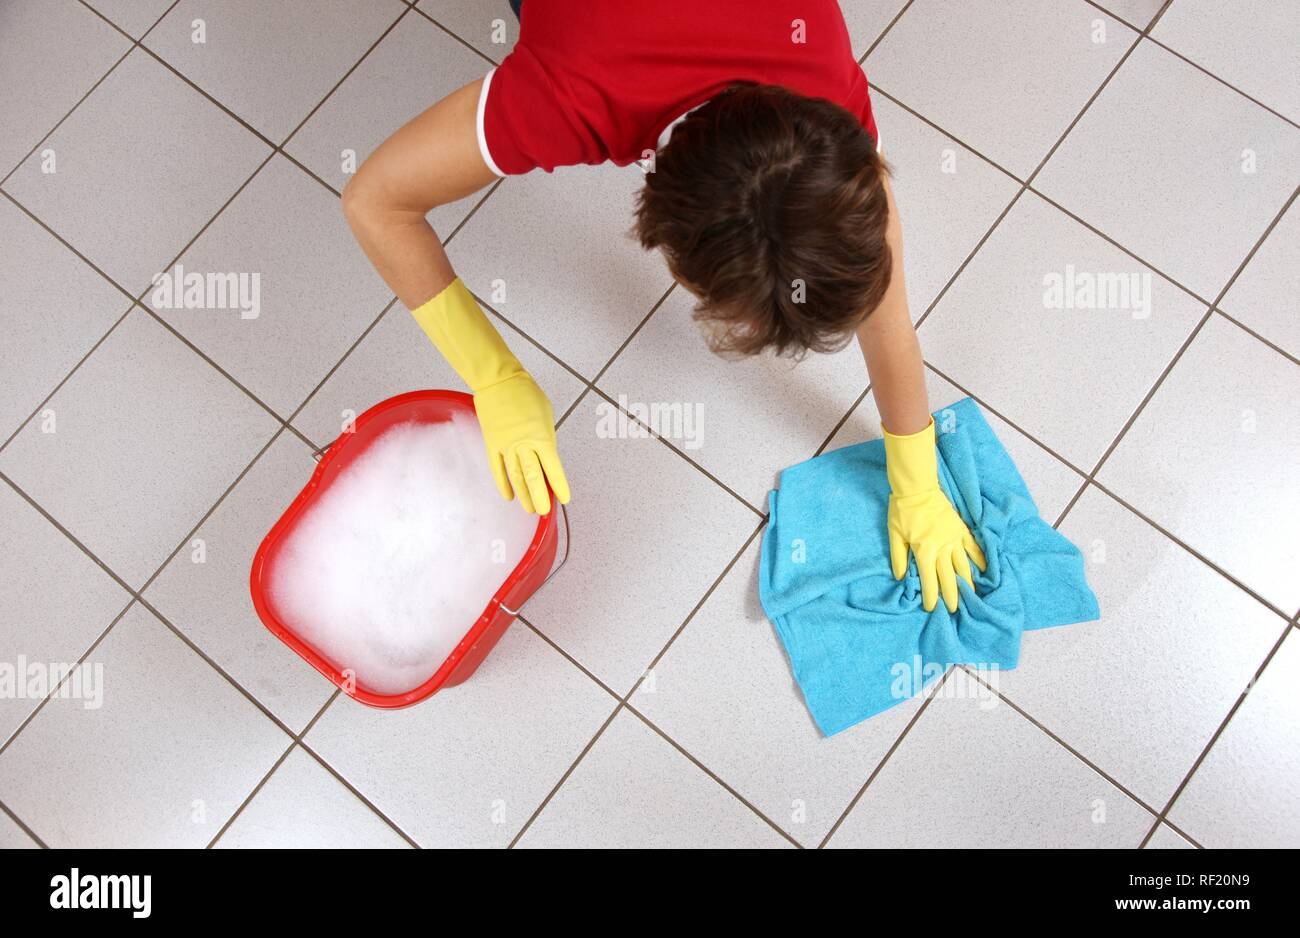 House work, woman cleaning, wiping floor with damp cloth - Stock Image